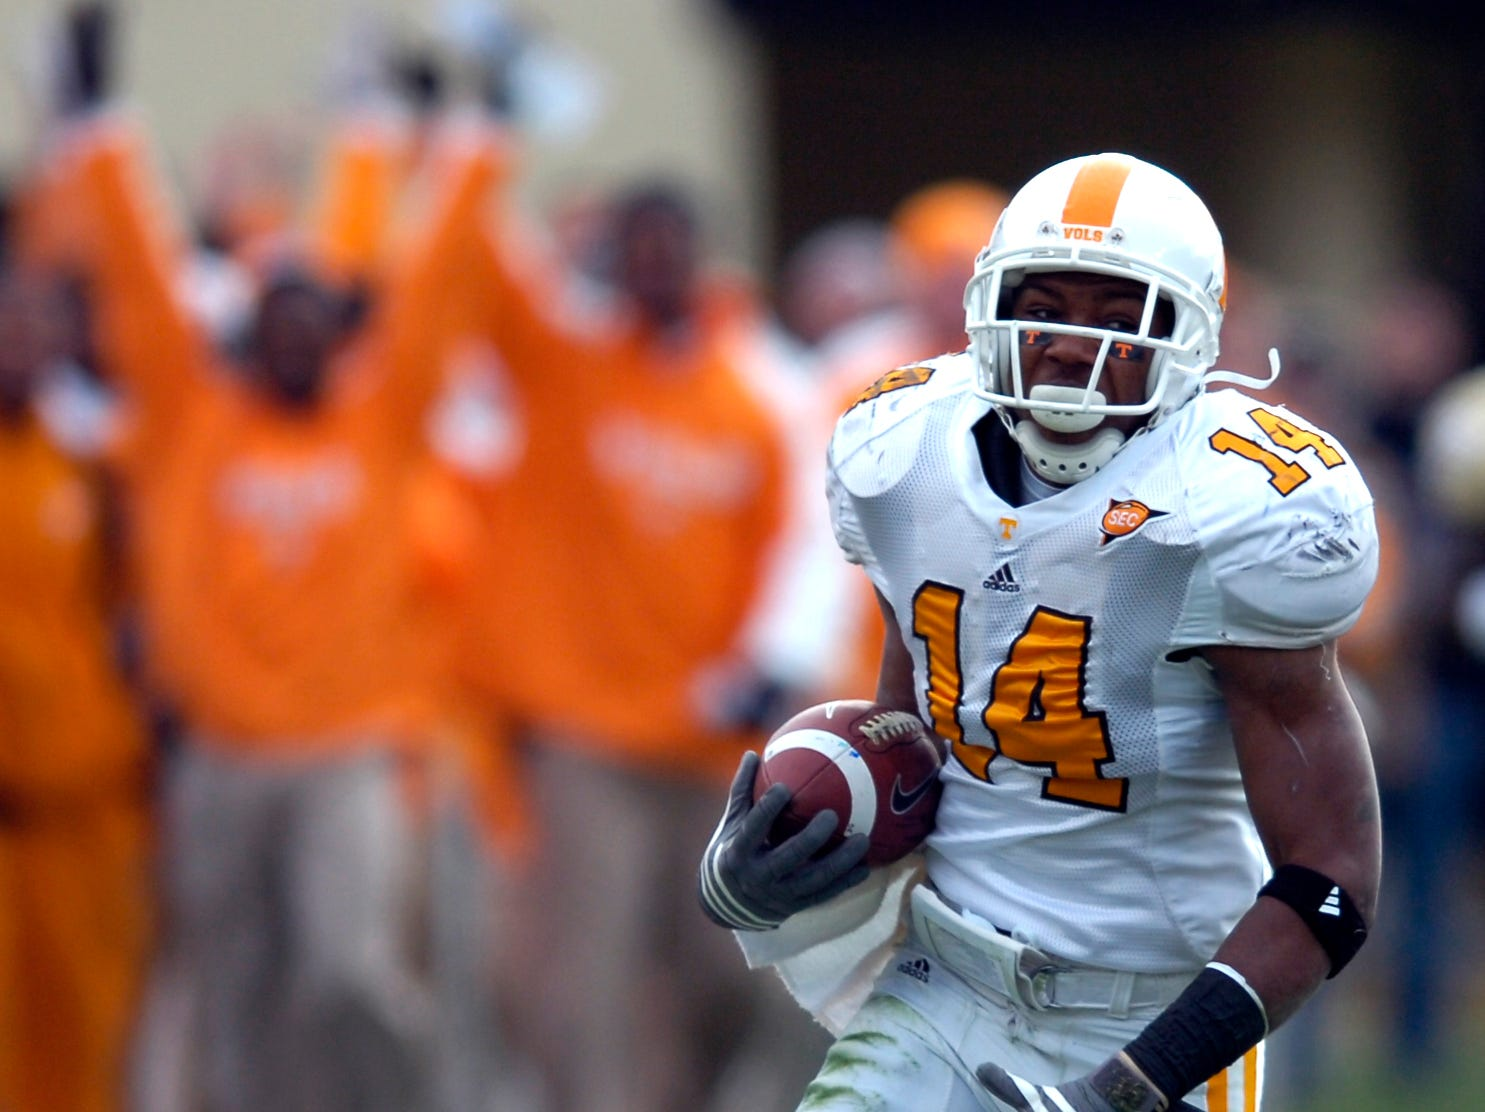 Tennessee defensive back Eric Berry (14) returns an interception for a touchdown against Vanderbilt at Vanderbilt Stadium in Nashville on Saturday.